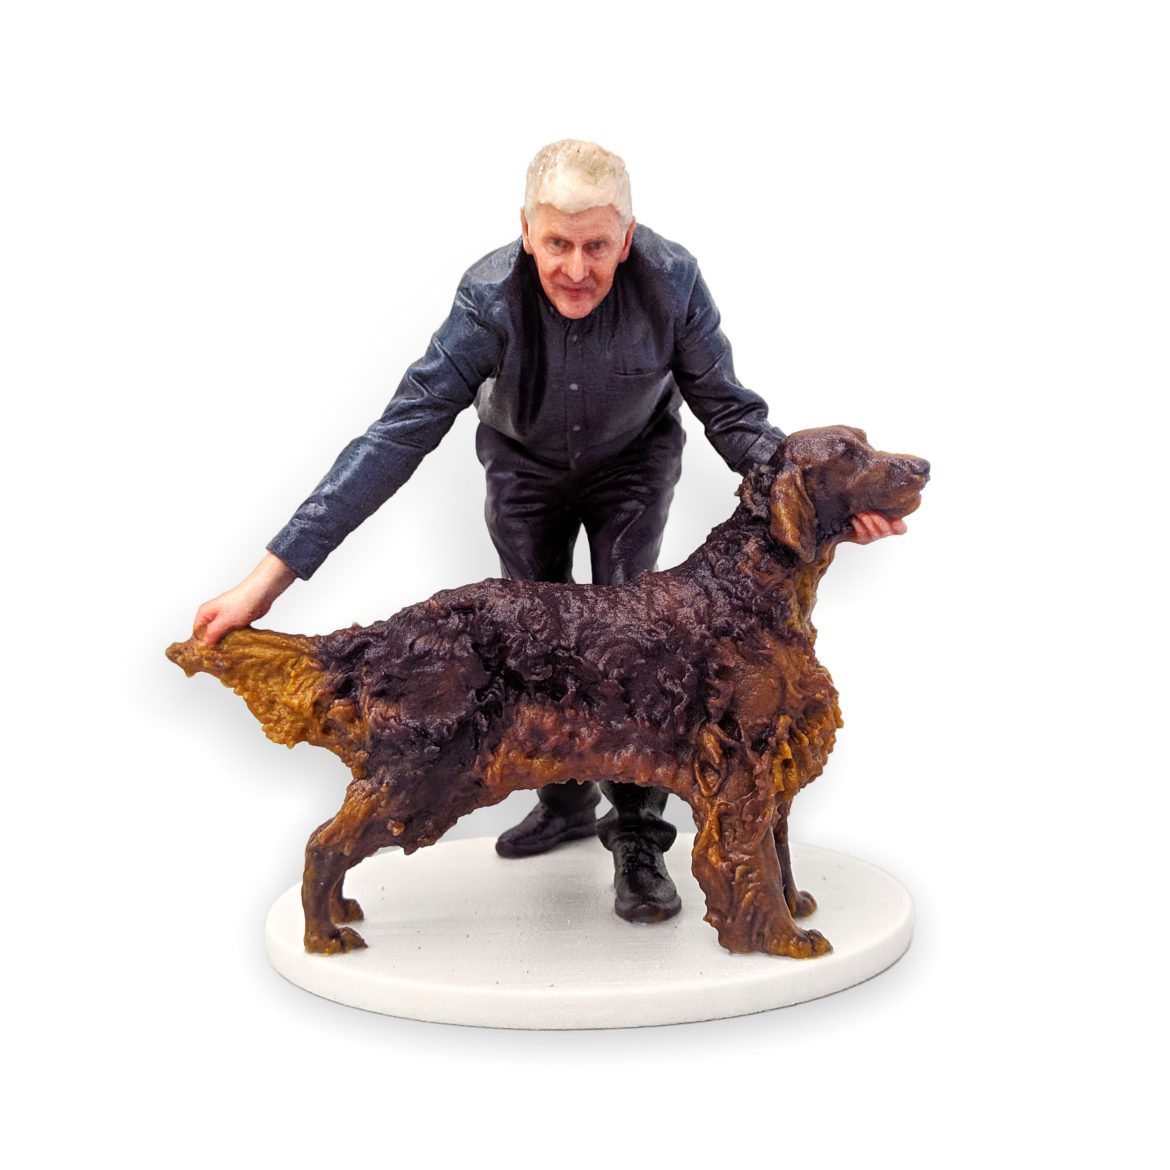 my3Dtwin, 3D Printed Figurine of a man who is presenting his dog at dog exhibition